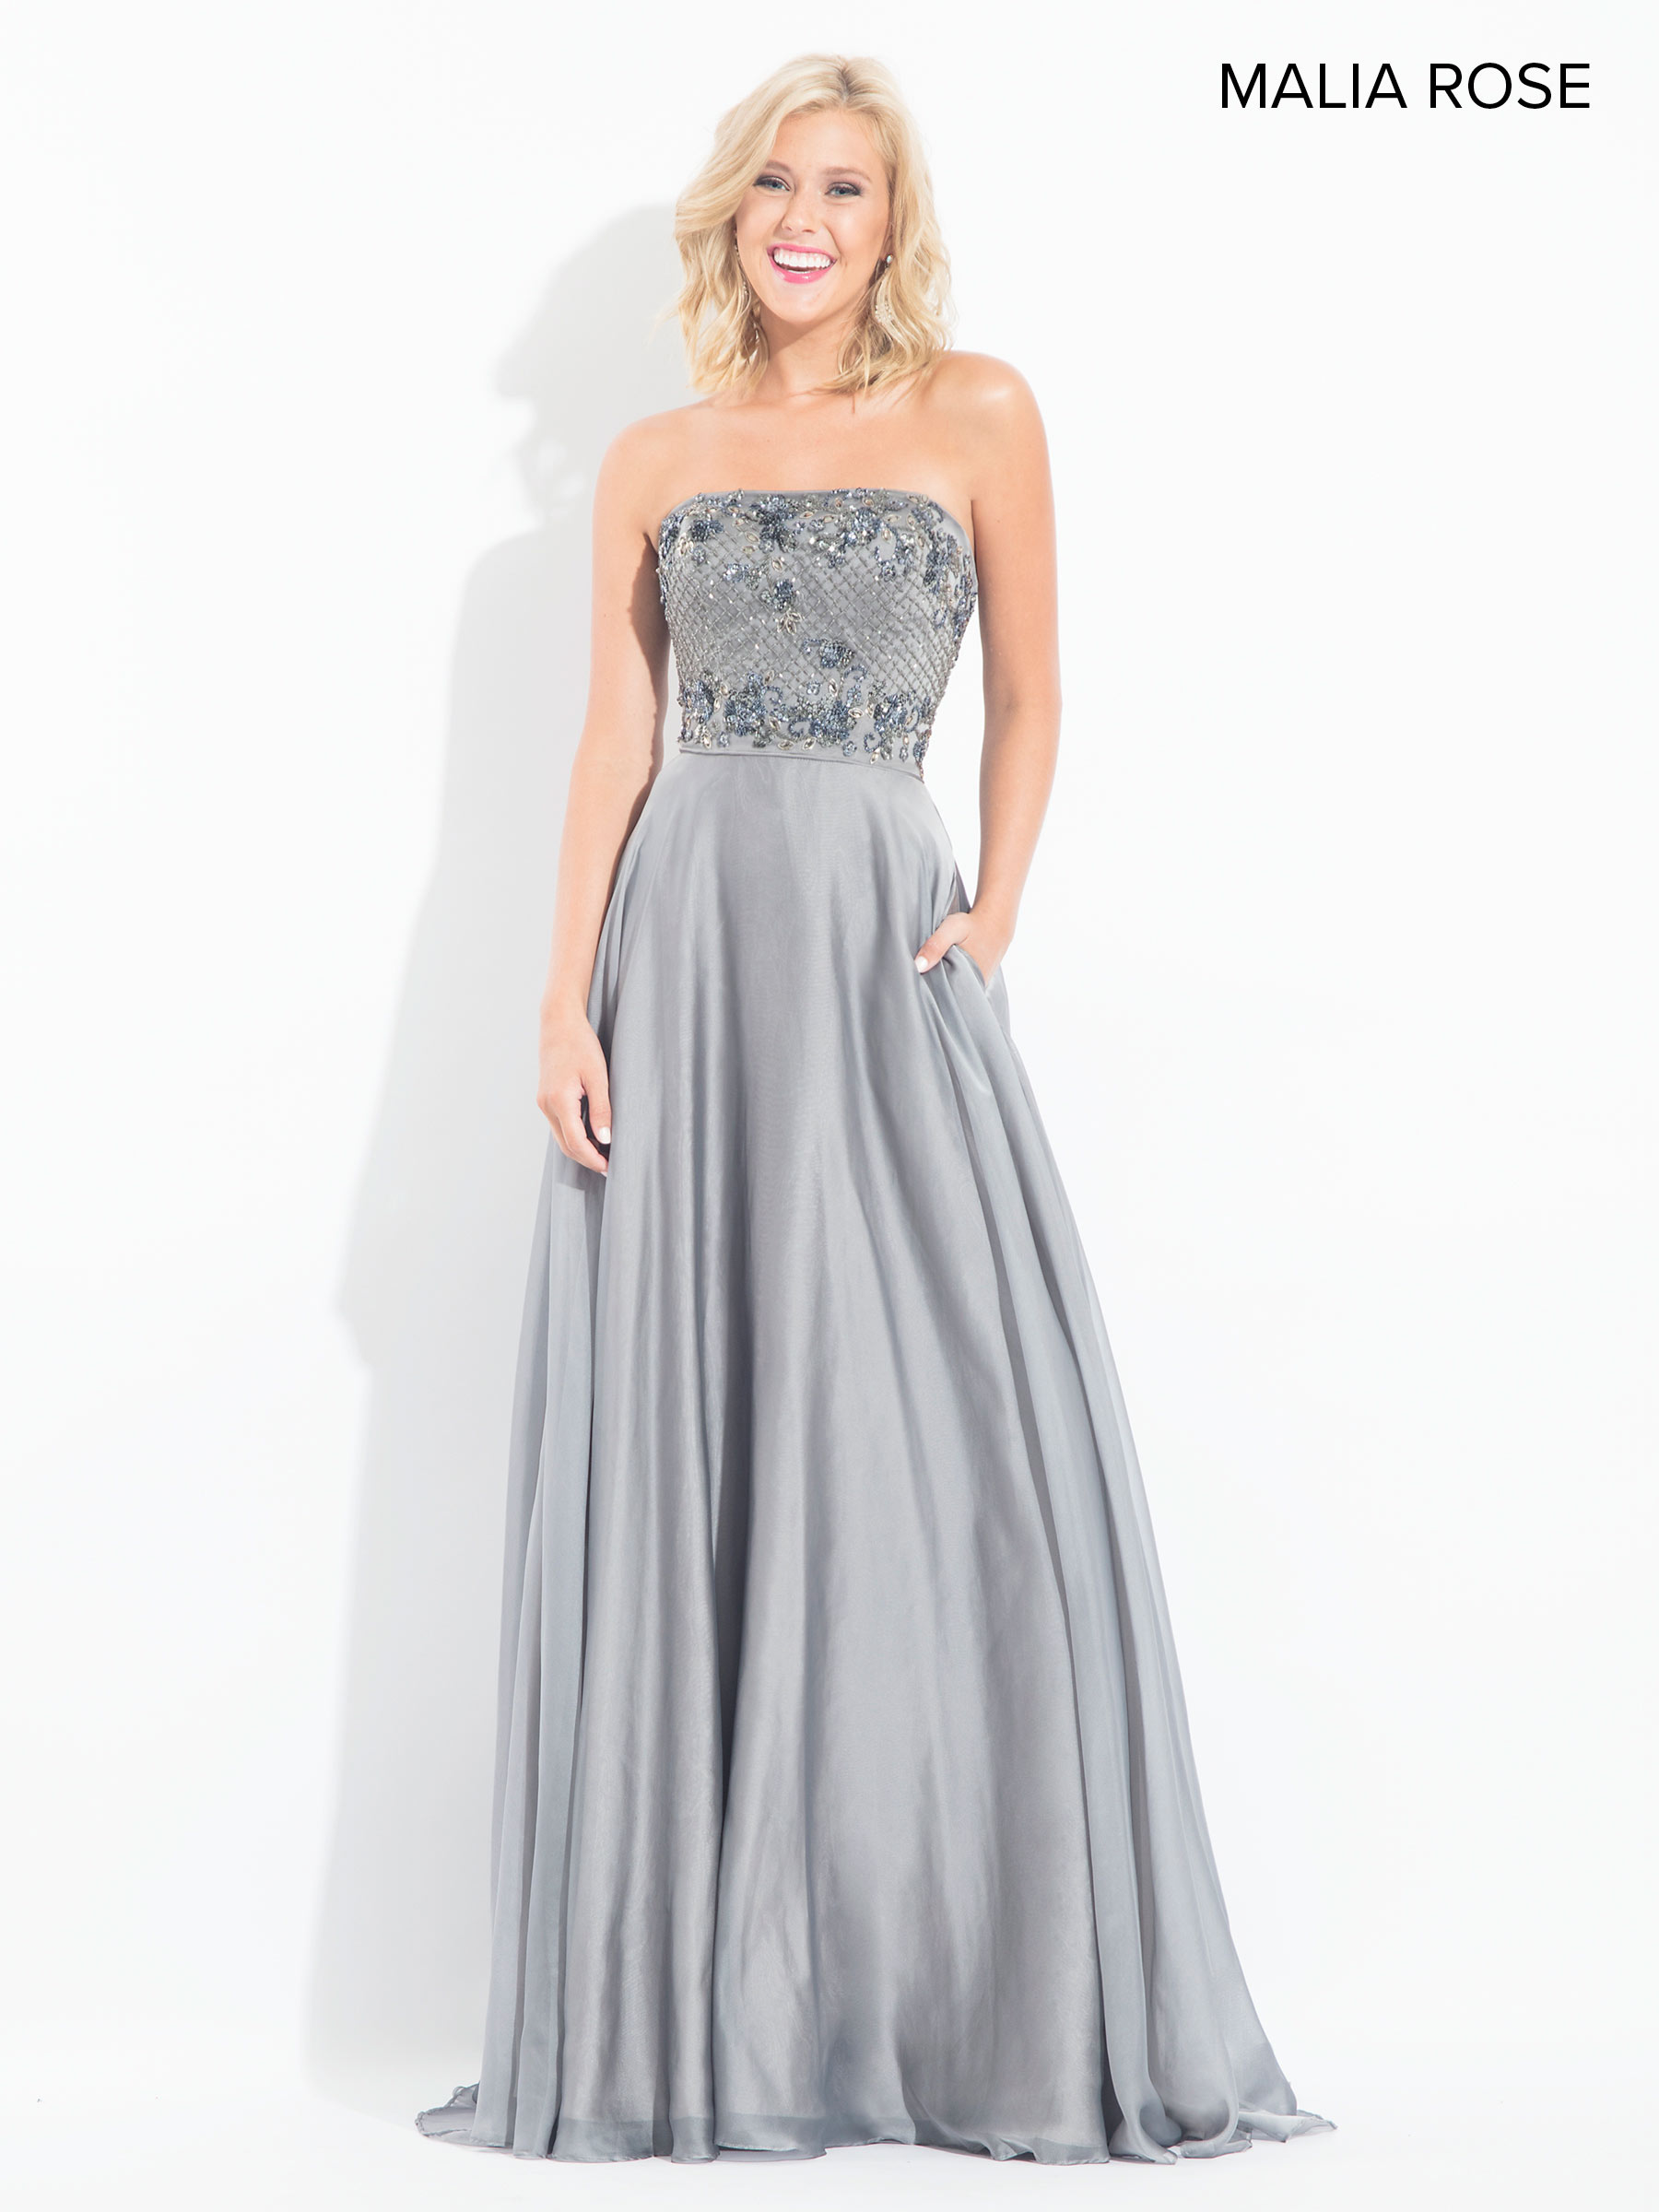 Malia Rose Prom Dresses | Style - MP1022 in Gunmetal, Marsala, or ...